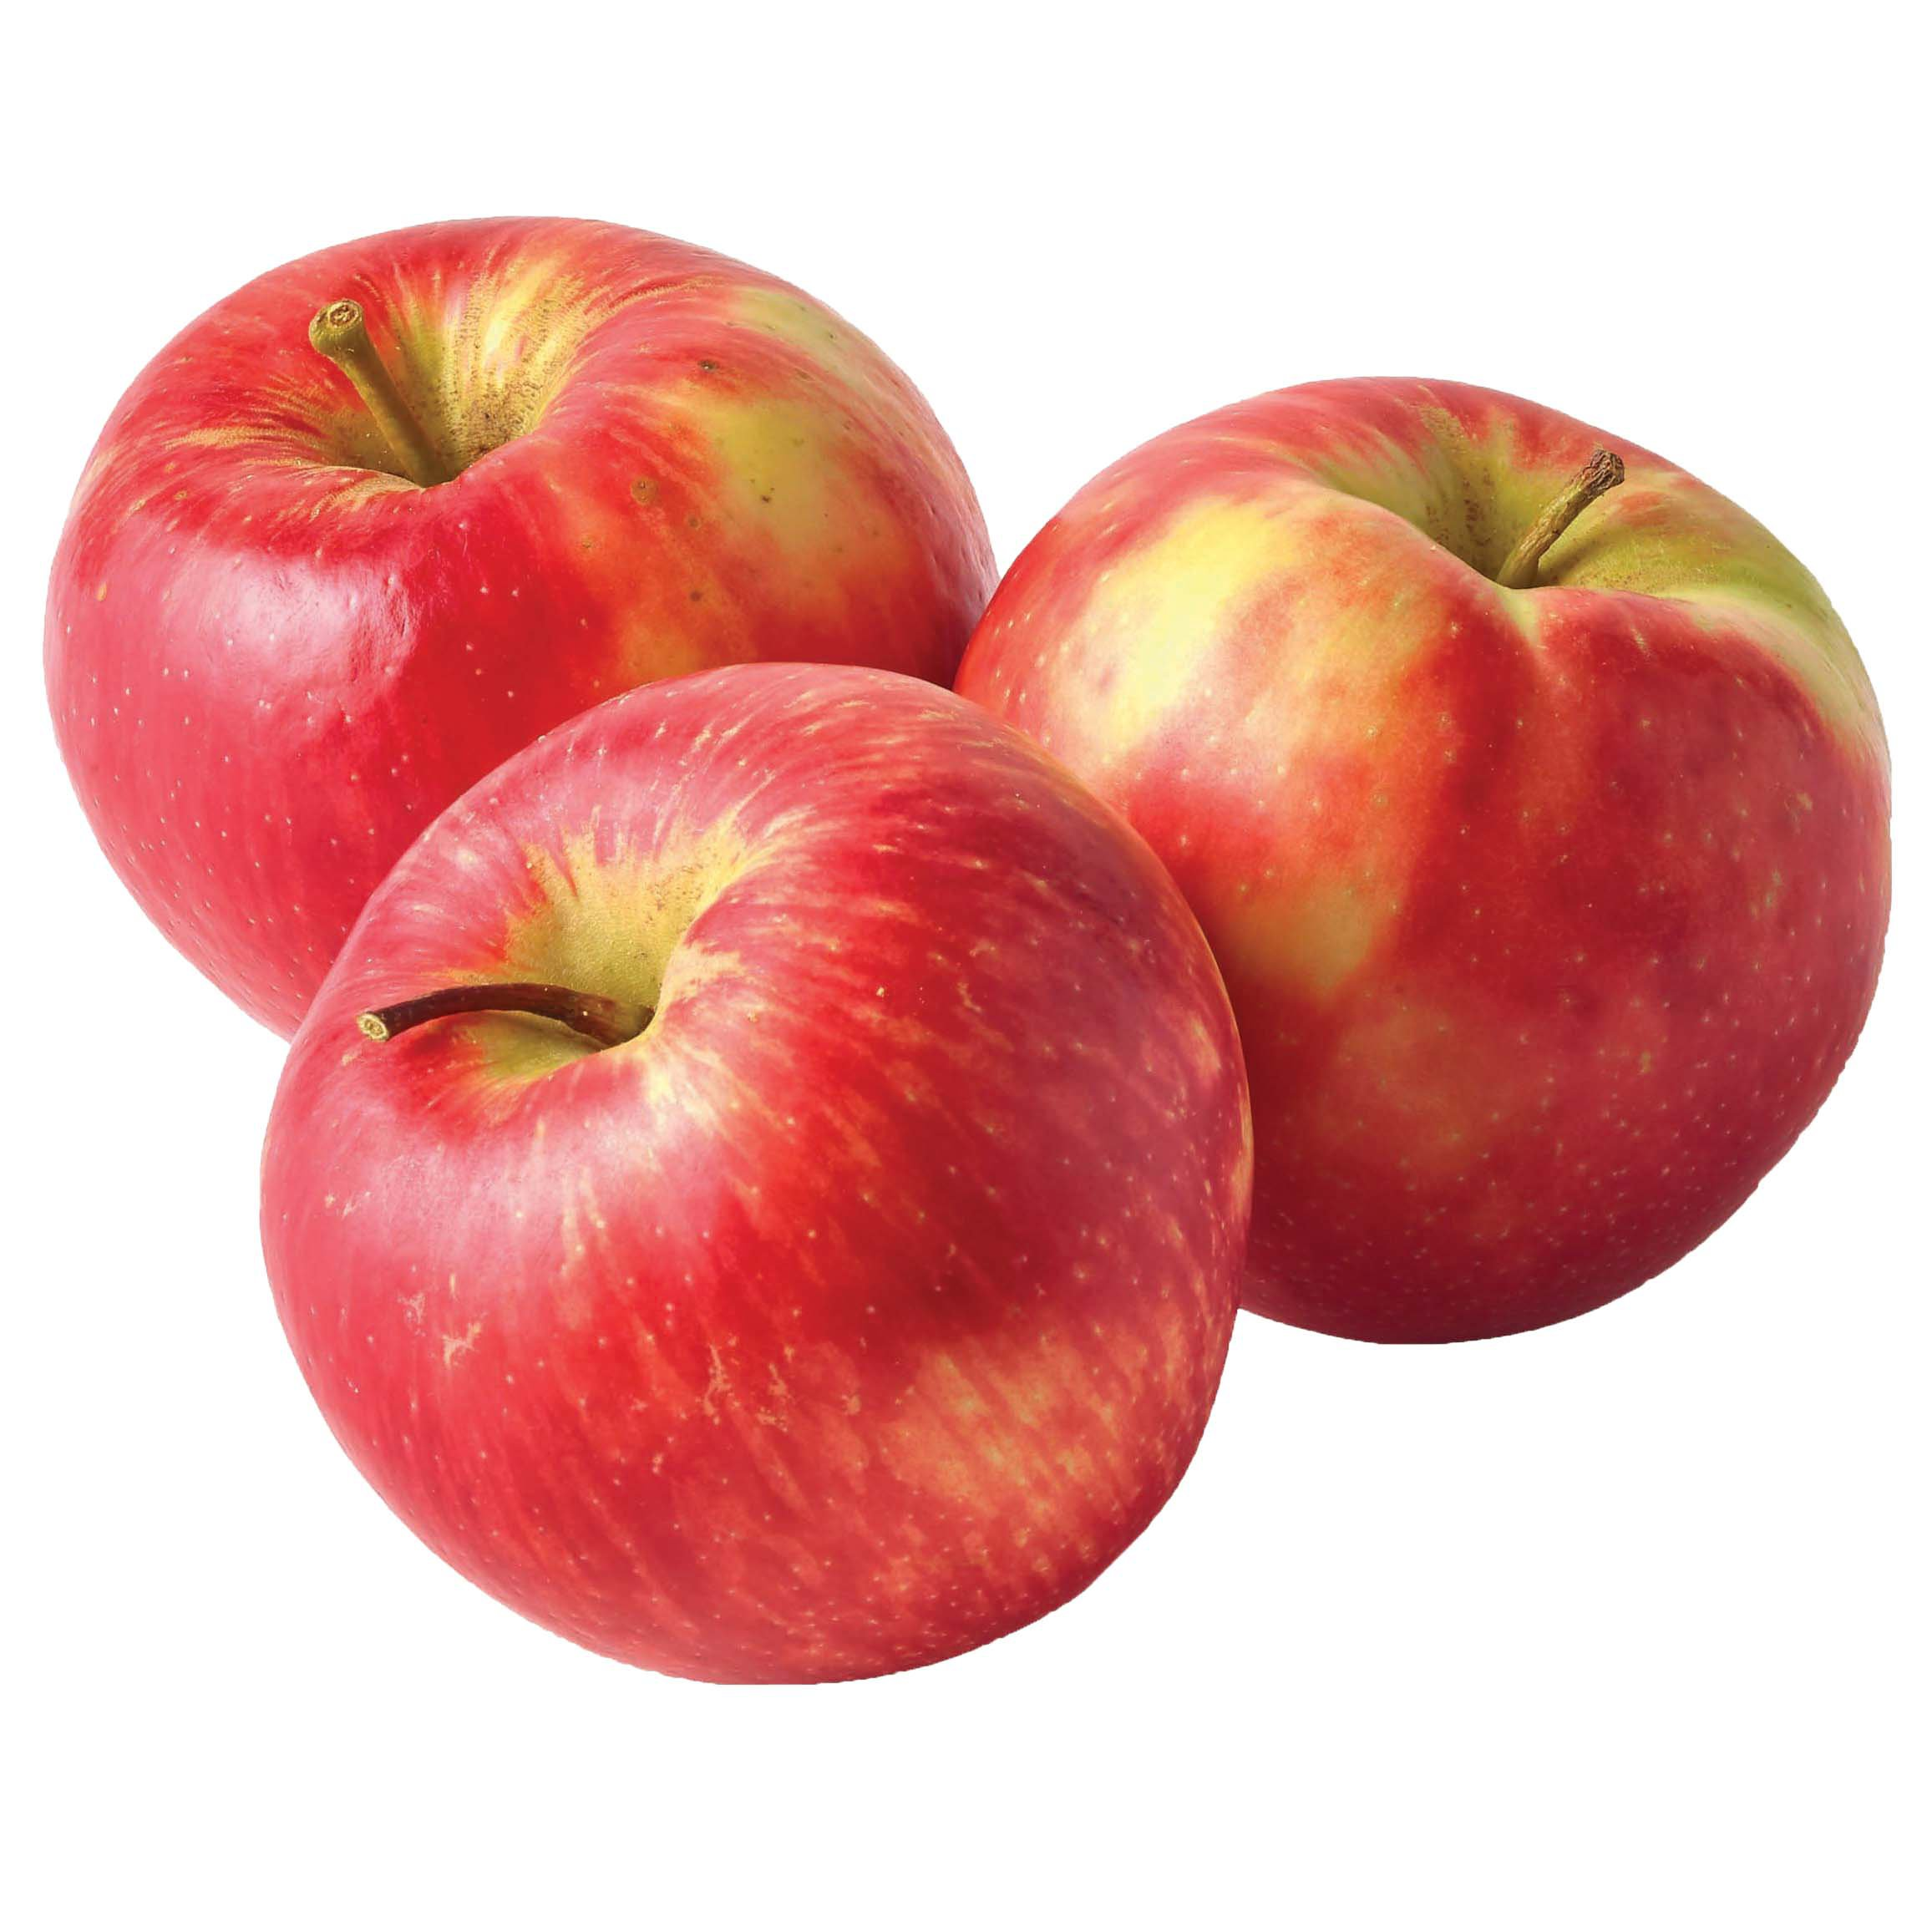 3 red apples